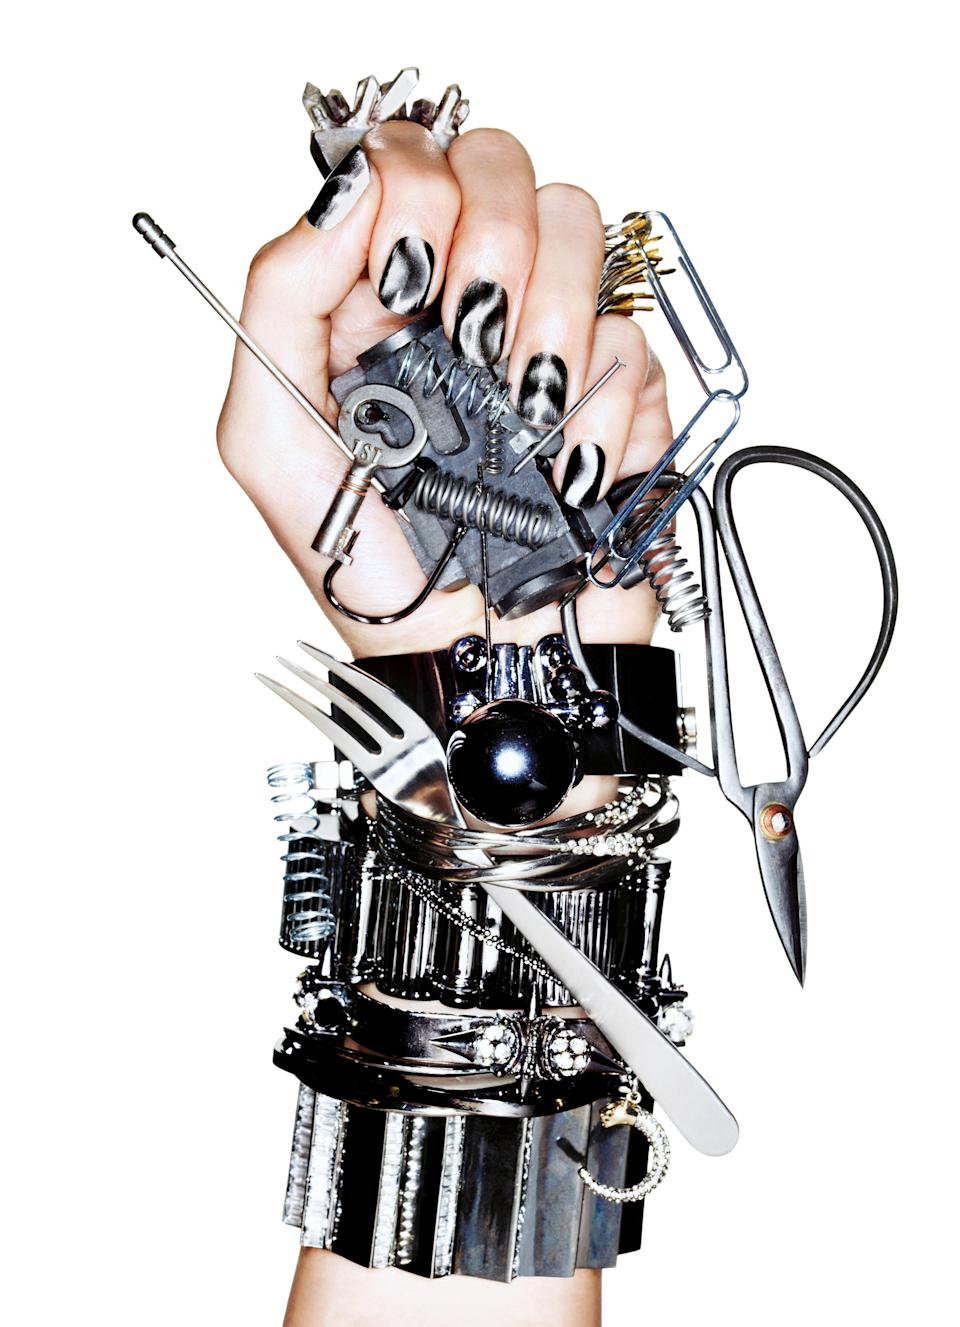 """<h1 class=""""title"""">IRON MAIDENNAILS INC. MAGNETIC ATTRACTION POLISH IN TRAFALGAR SQUARE. FROM TOP, RINGS BY OBLIK ATELIER AND PAMELA LOVE; CUFFS BY EDDIE BORGO, ALEXIS BITTAR, CC SKYE, FENTON, BCBGENERATION, AND SOO IHN KIM; NECKLACE WORN AS BRACELET BY STELLA & DOT. MANICU</h1><cite class=""""credit"""">Photographed by Ben Hassett, <em>Vogue</em>, October 2011</cite>"""